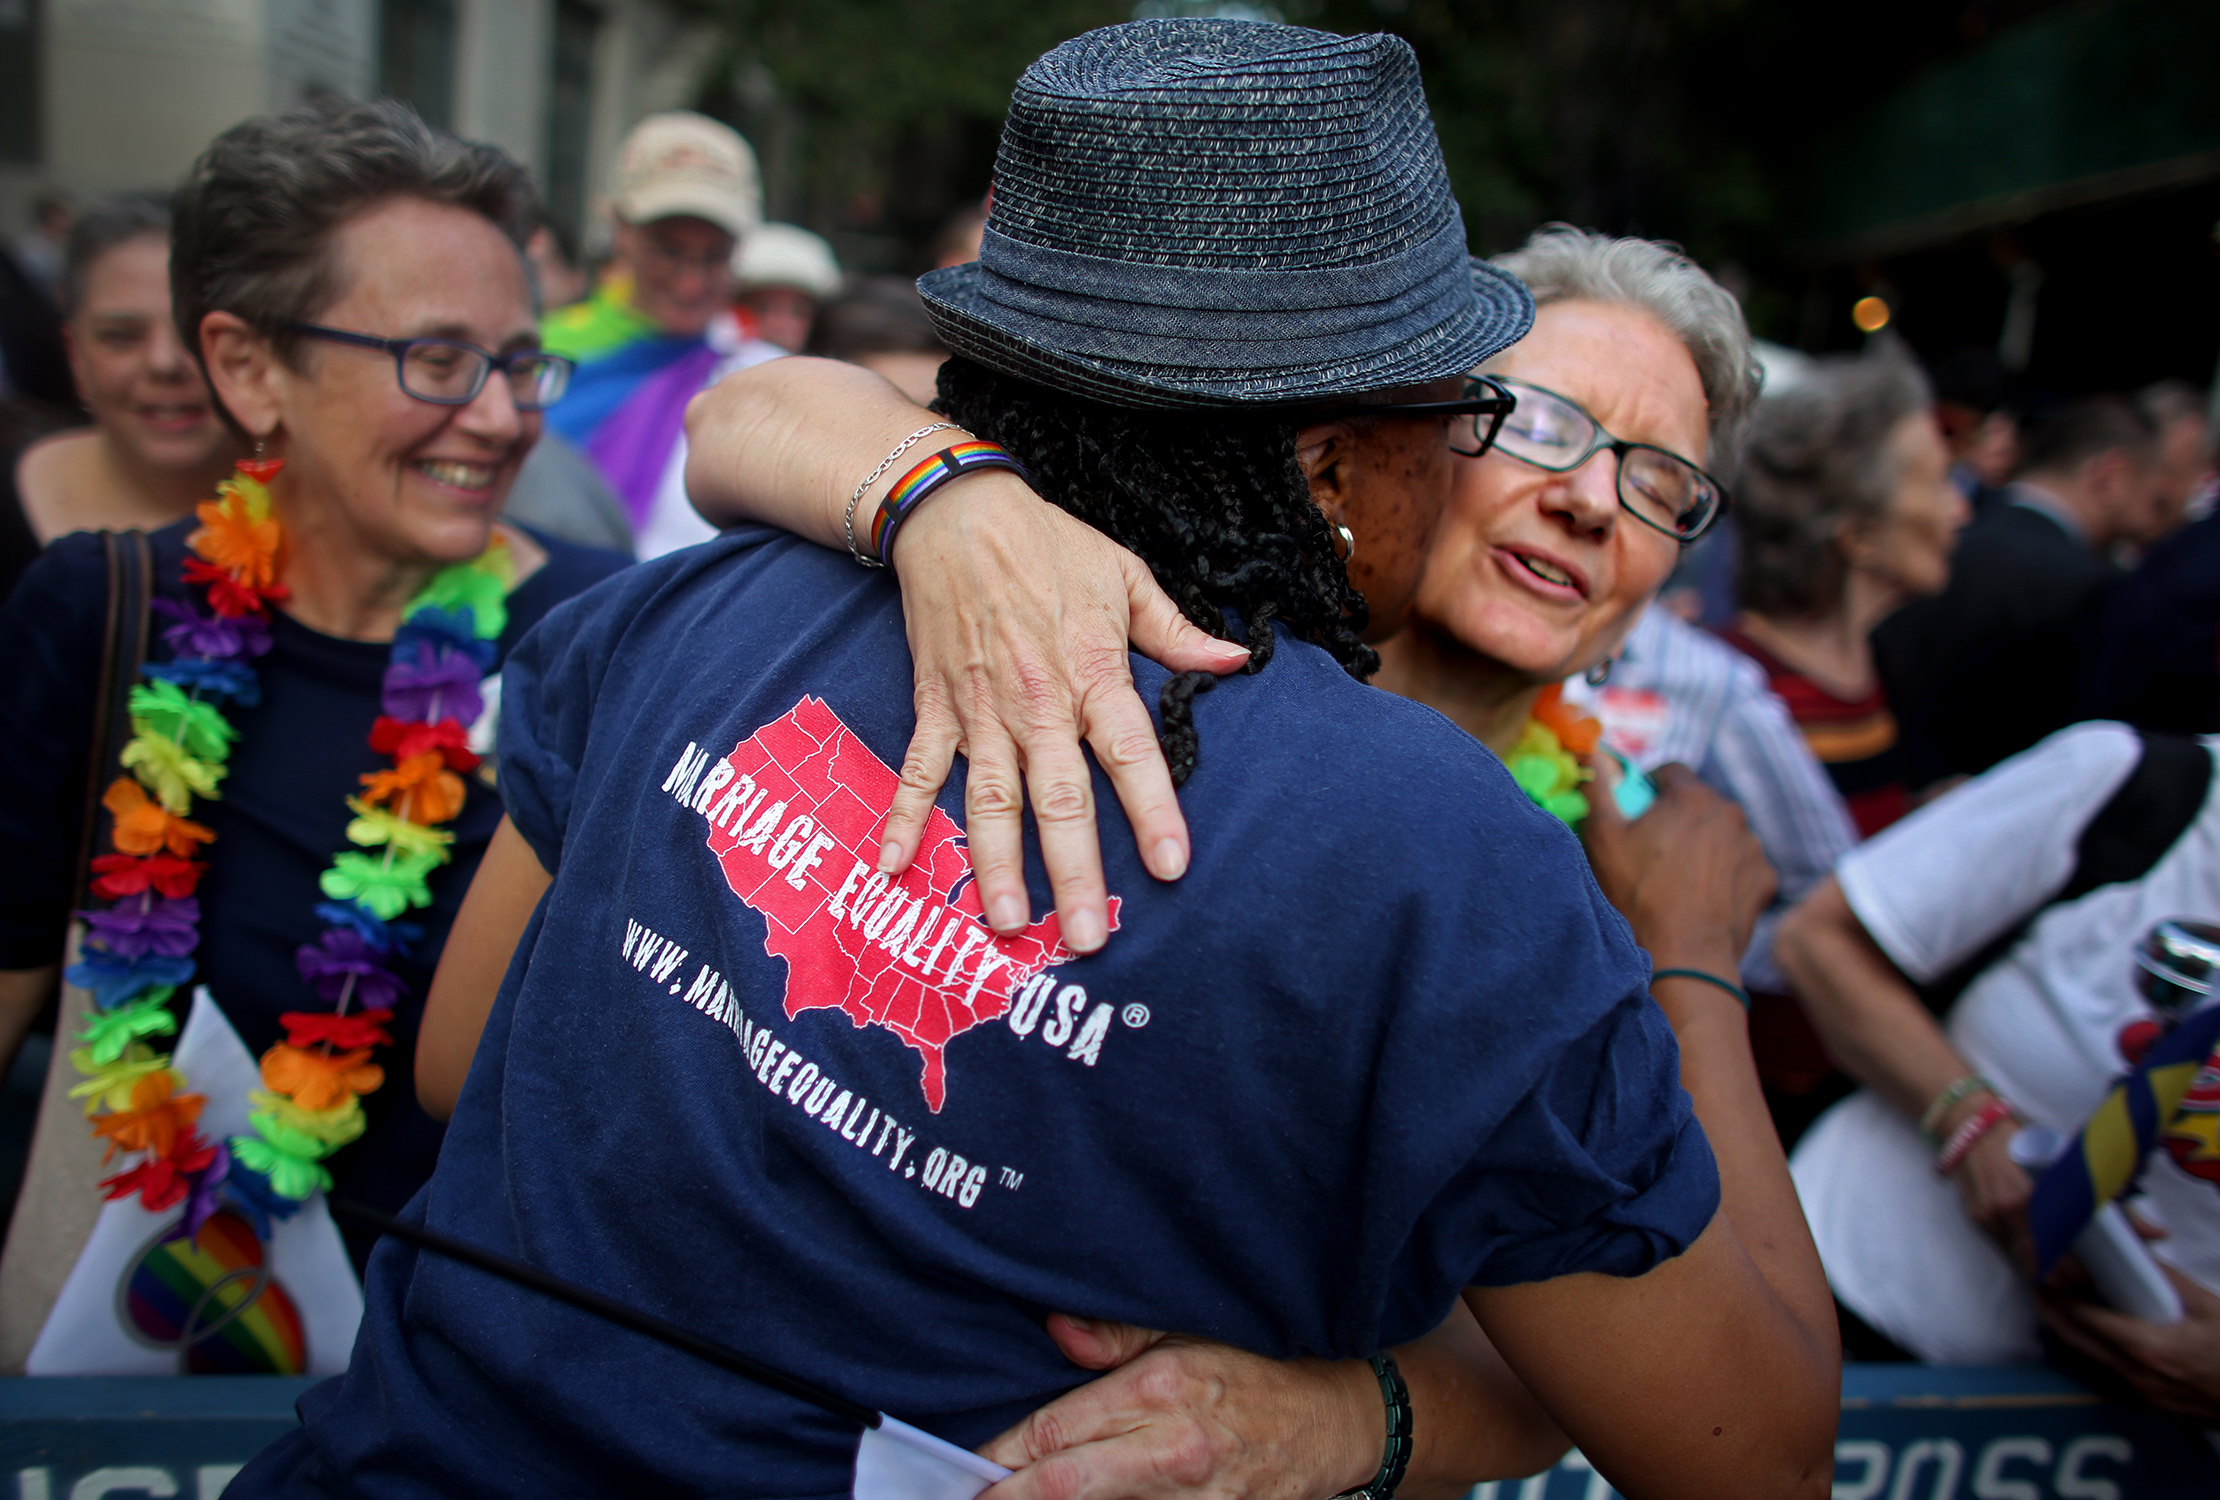 Sheila Marino-Thomas, 52, hugs a friend during a rally in front of the Stonewall Inn after marriage was made legal nationwide.